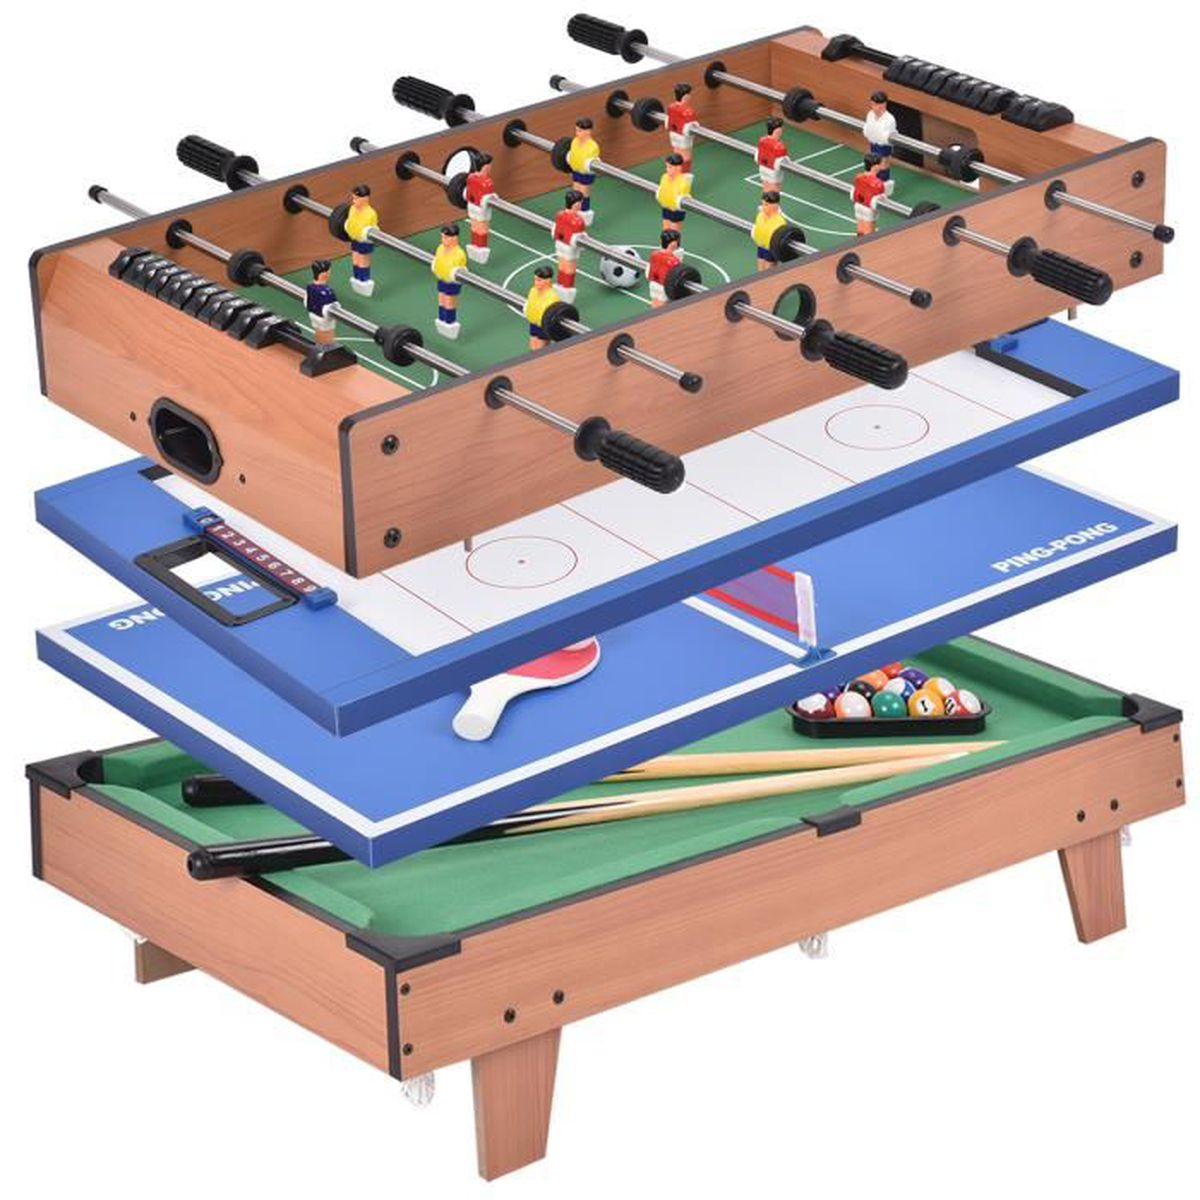 Table multi jeux 4 en 1 baby foot tennis de table hockey billard gain de plac - Table multi jeux 5 en 1 ...